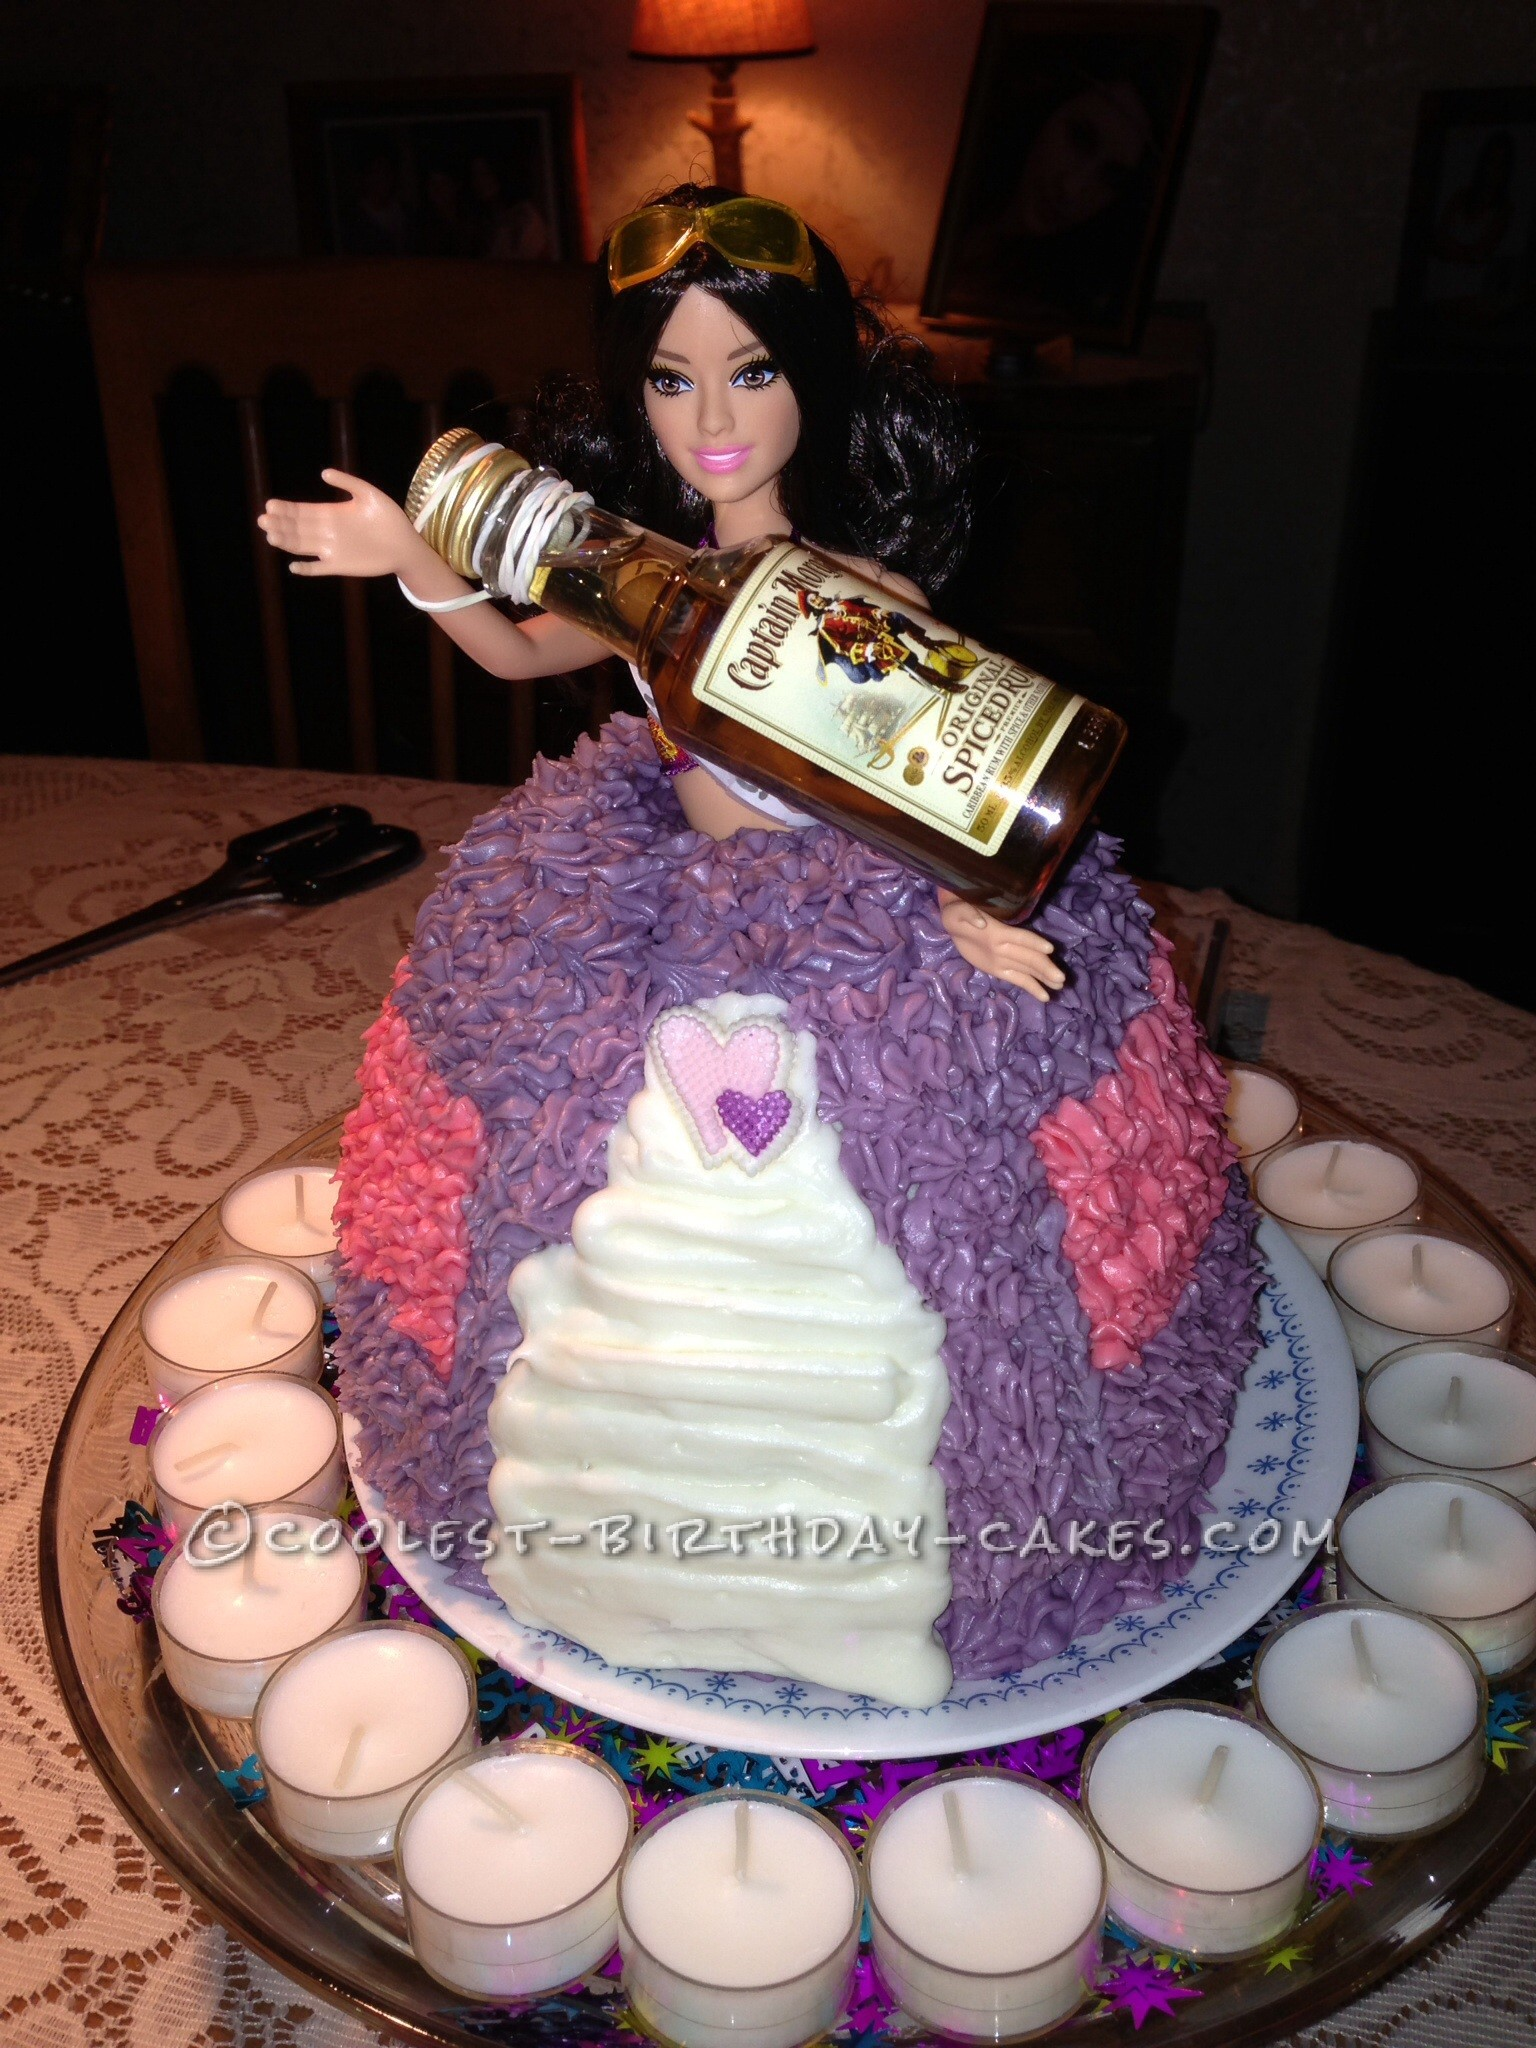 My Daughter Was Turning 21 And Of All Things She Wanted A Barbie Cake So I Dug Out Grandmothers Midnite Chocolate Recipe Started Baking